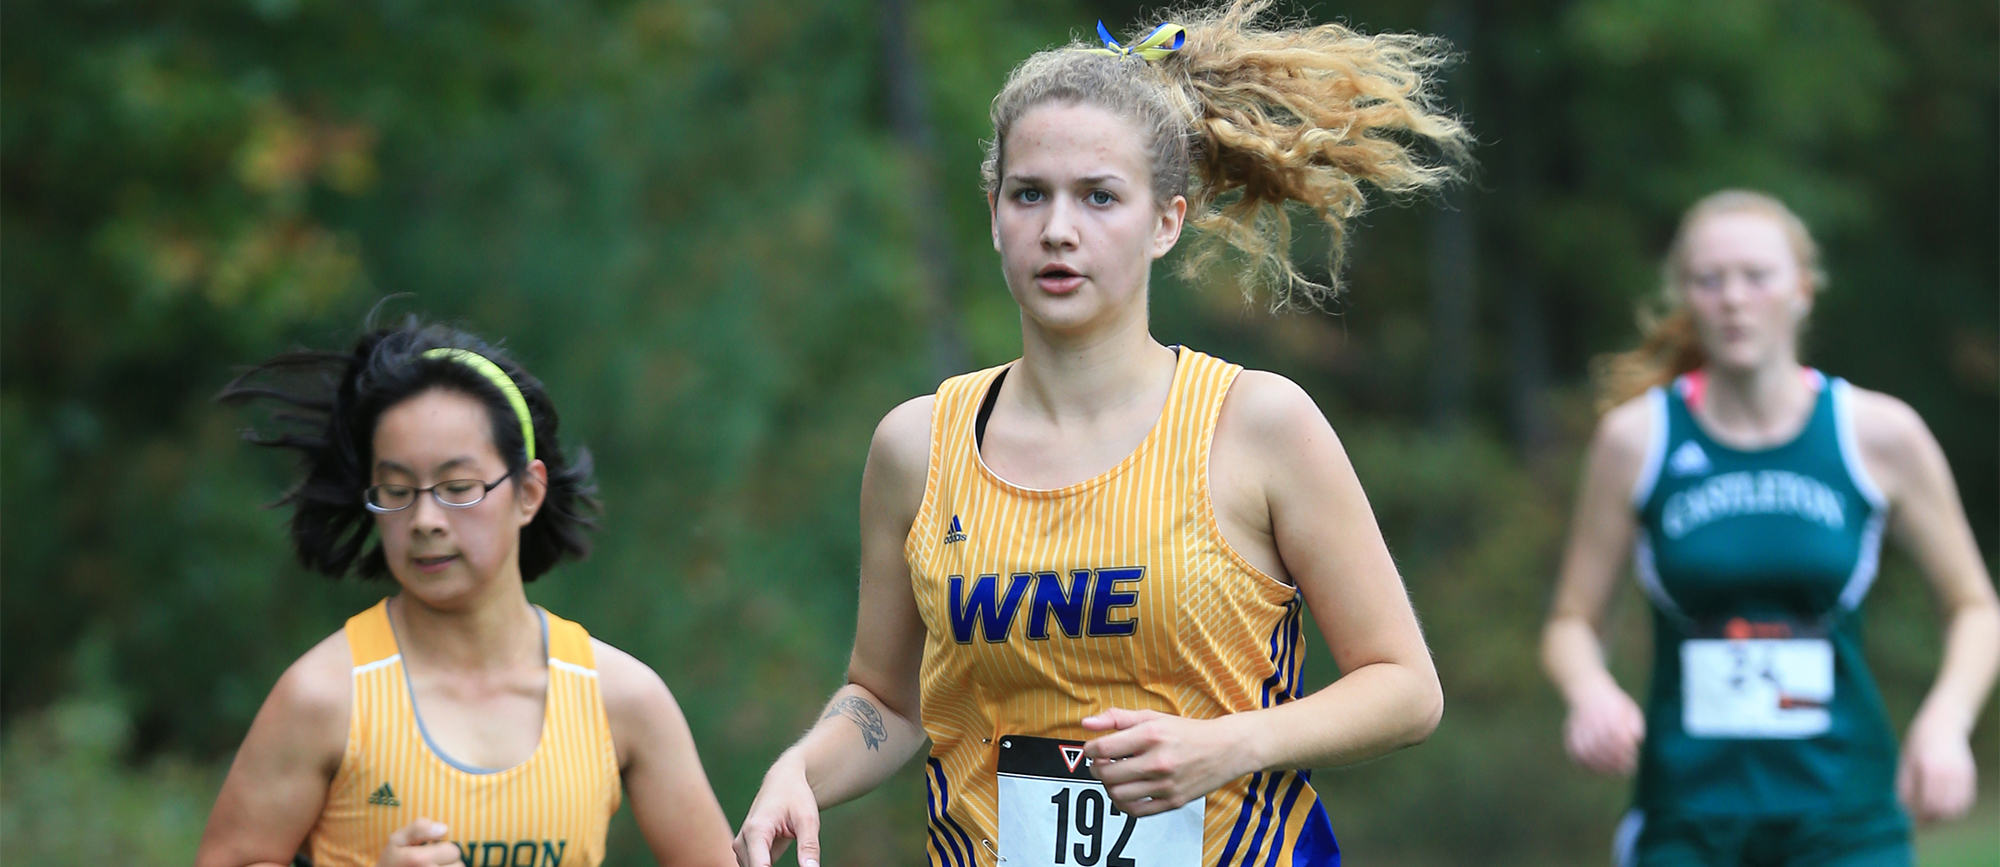 Ashley Benedict finished 16th overall as Western New England captured the Elms Blazer Classic on Saturday. (Photo by Doug Steinbock)